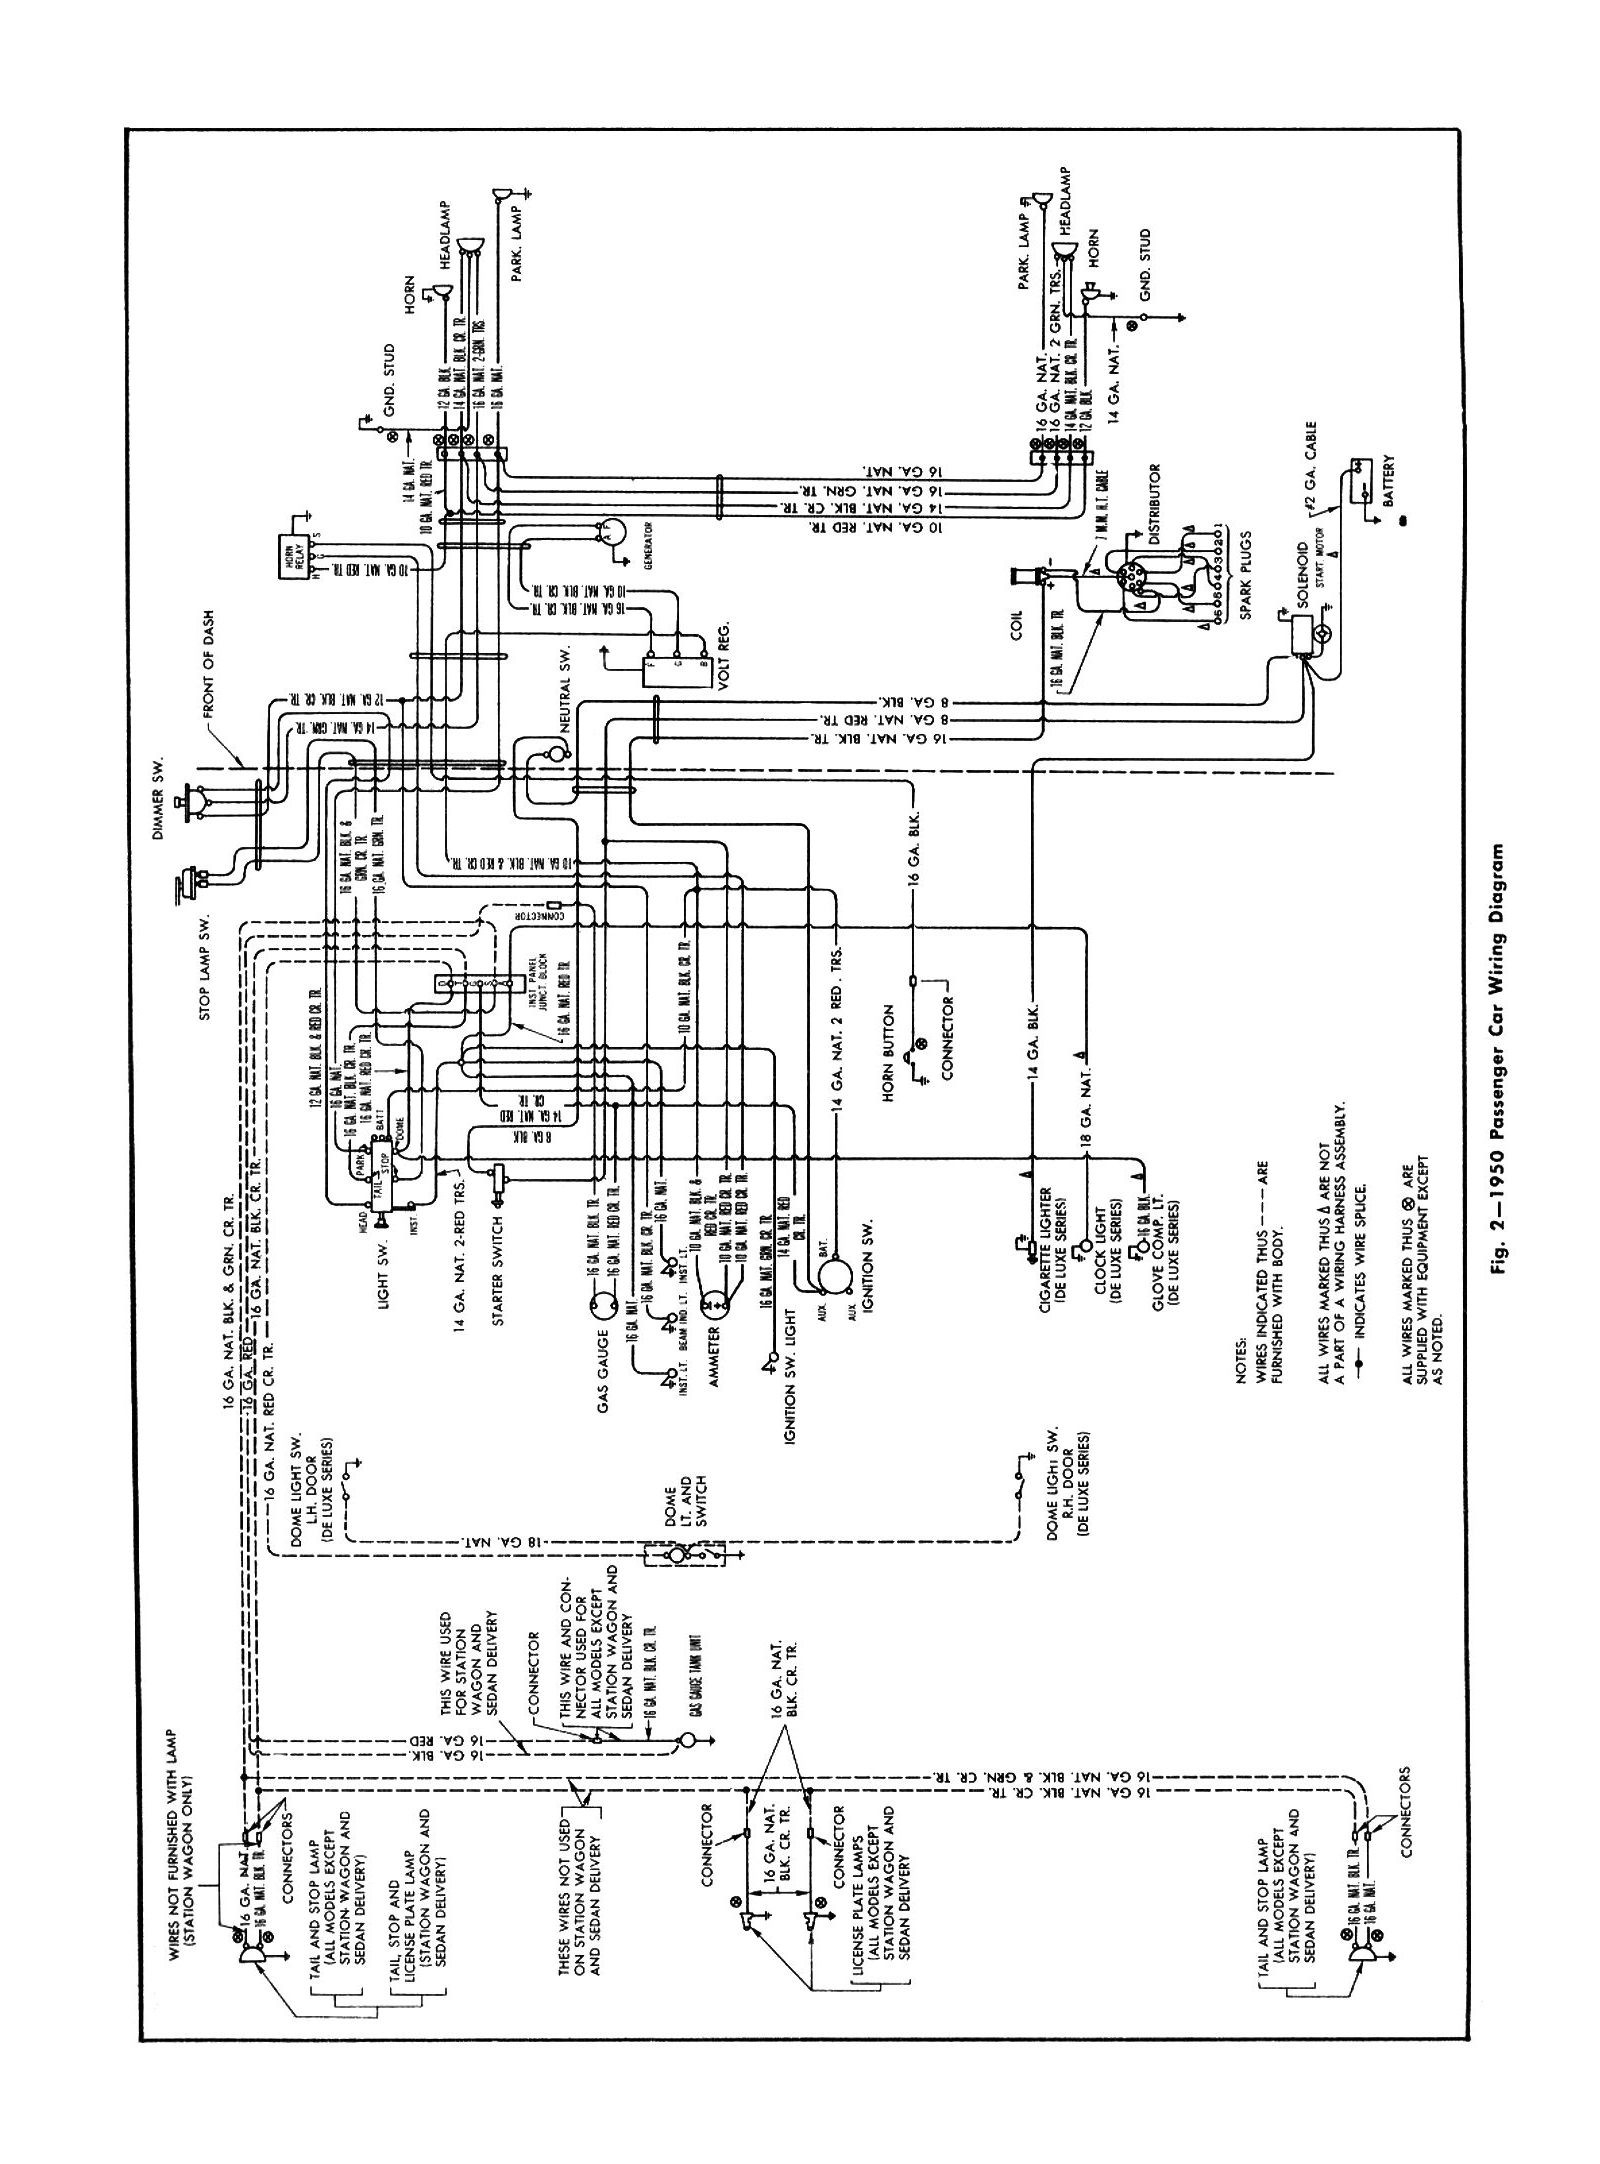 very complex wiring diagrams